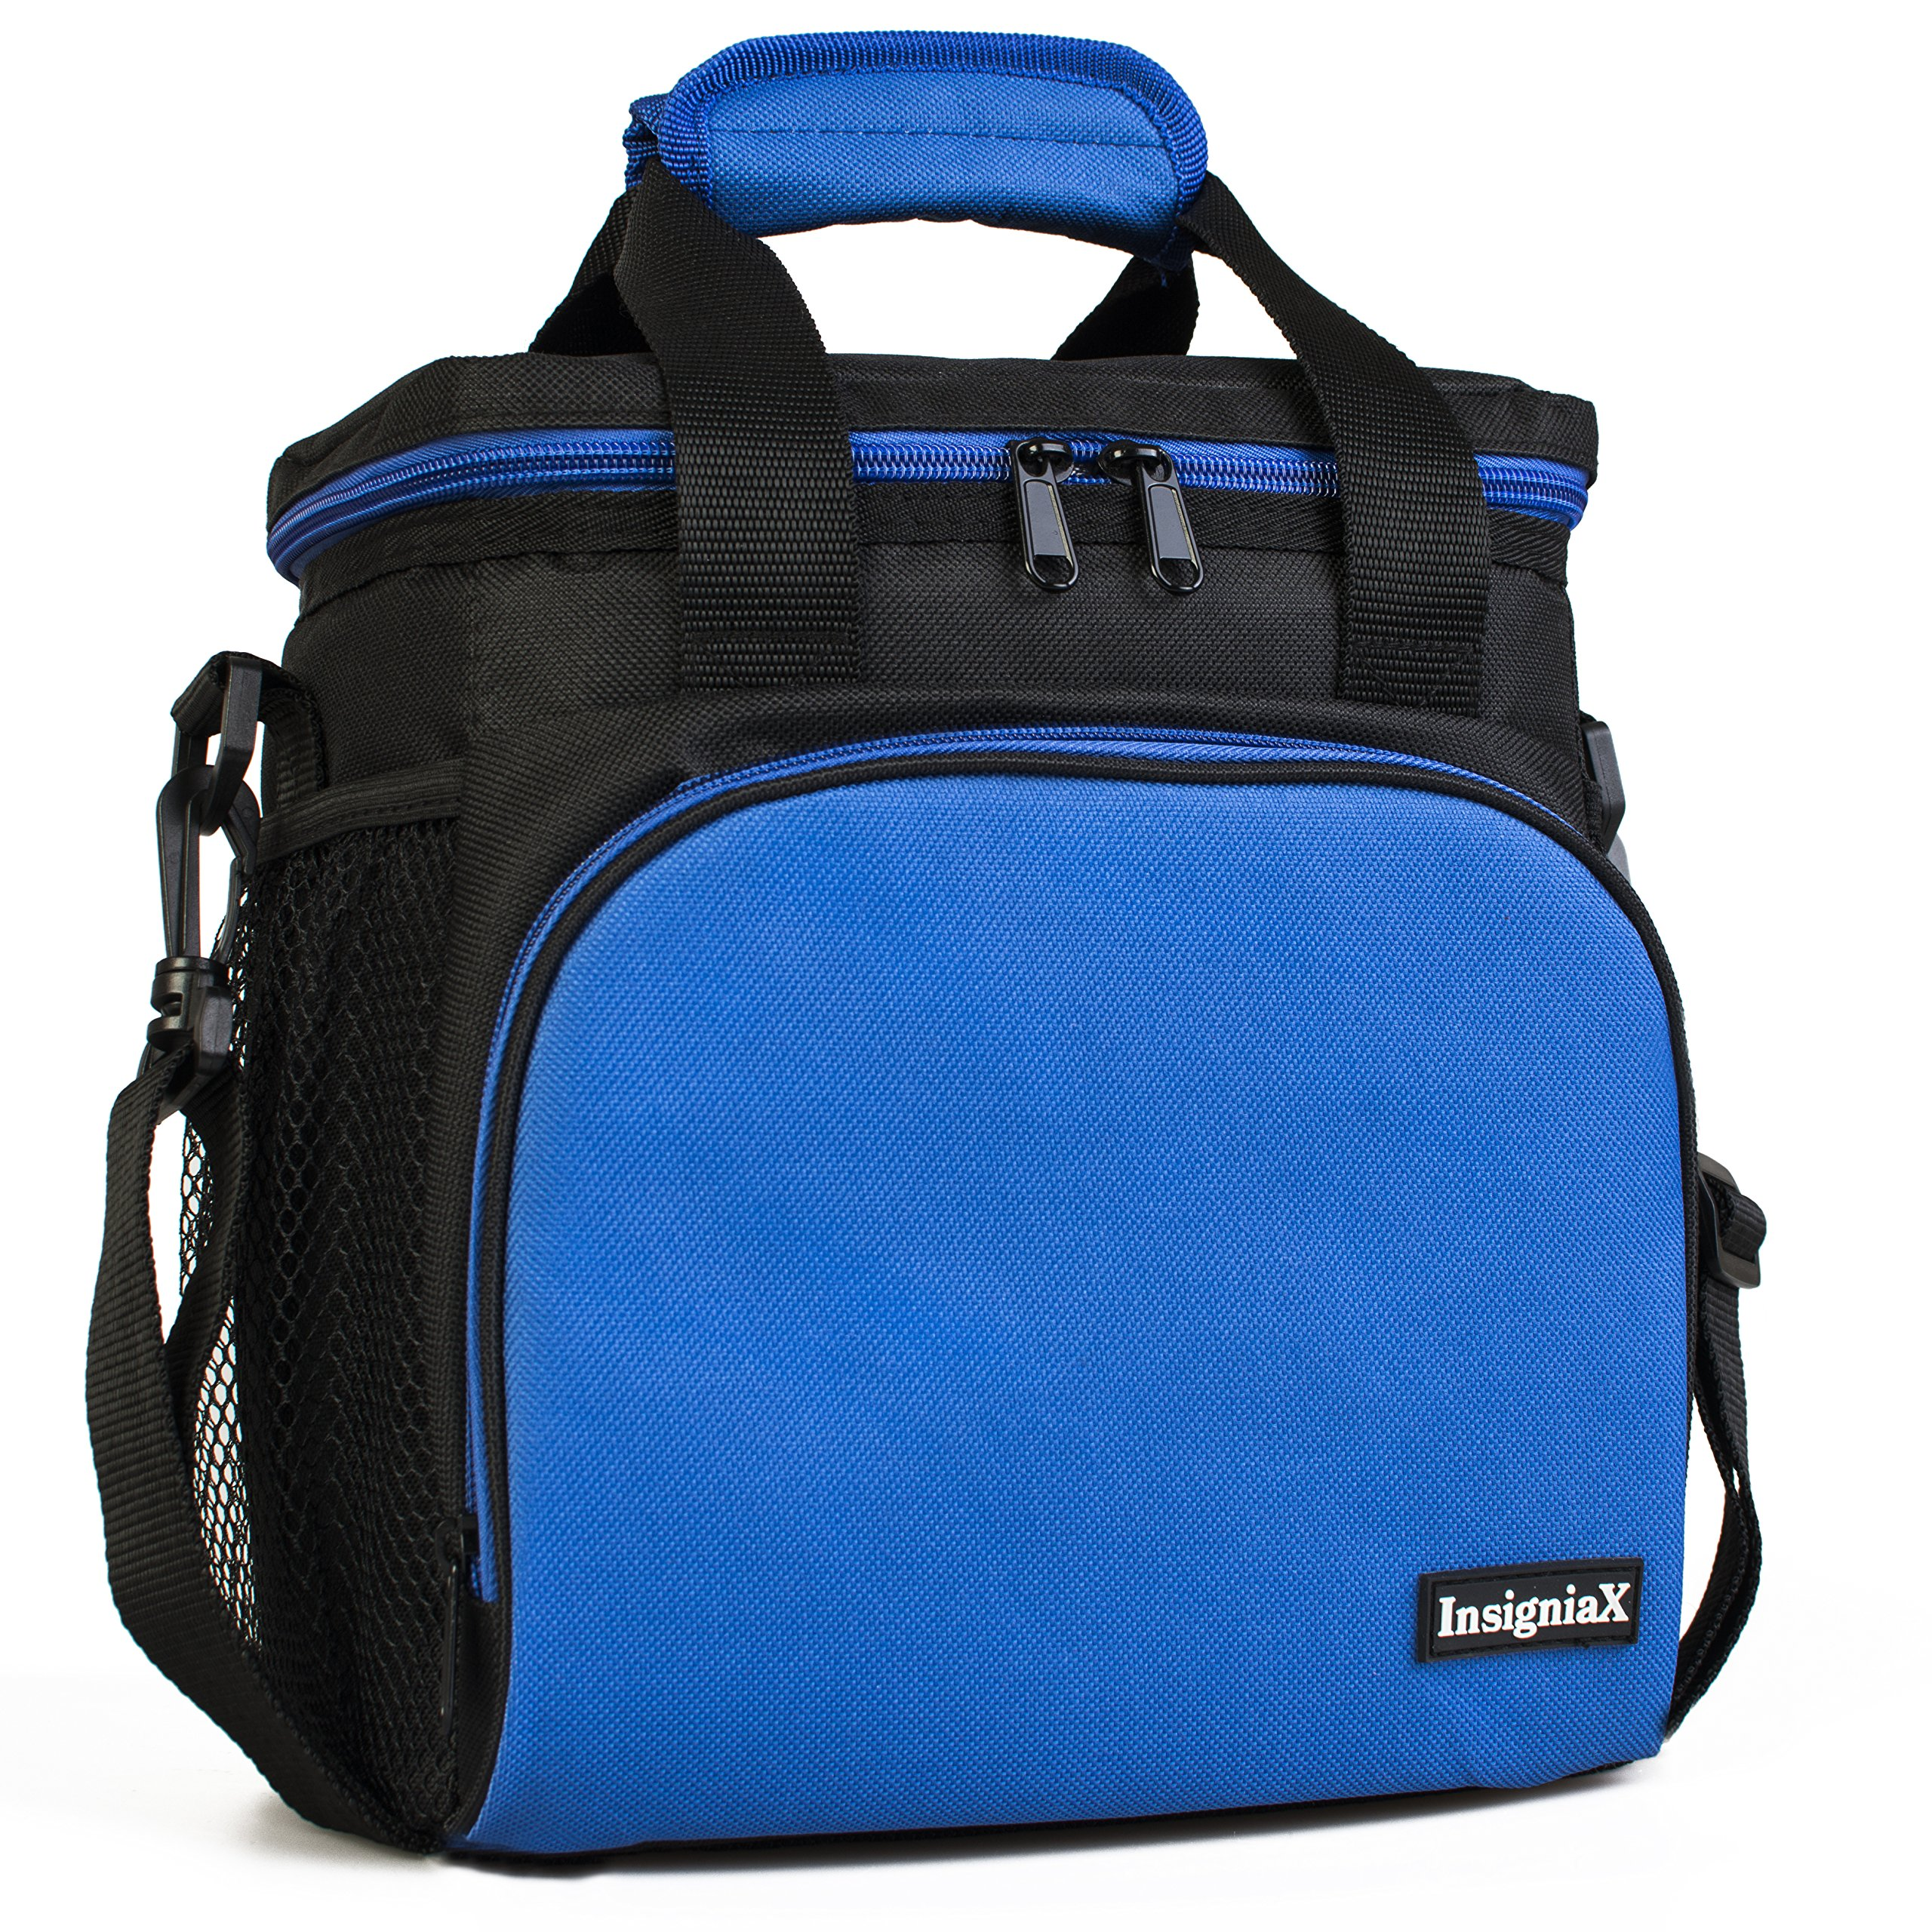 Insulated Lunch Bag S1: InsigniaX Cool Back to School Lunch Box/Cooler/Lunchbox for Adult Women Men Work School Kids Girls Boys With Strap Bottle Holder H: 10'' x W: 5.1'' x L: 9.2'' (Standard, Blue)